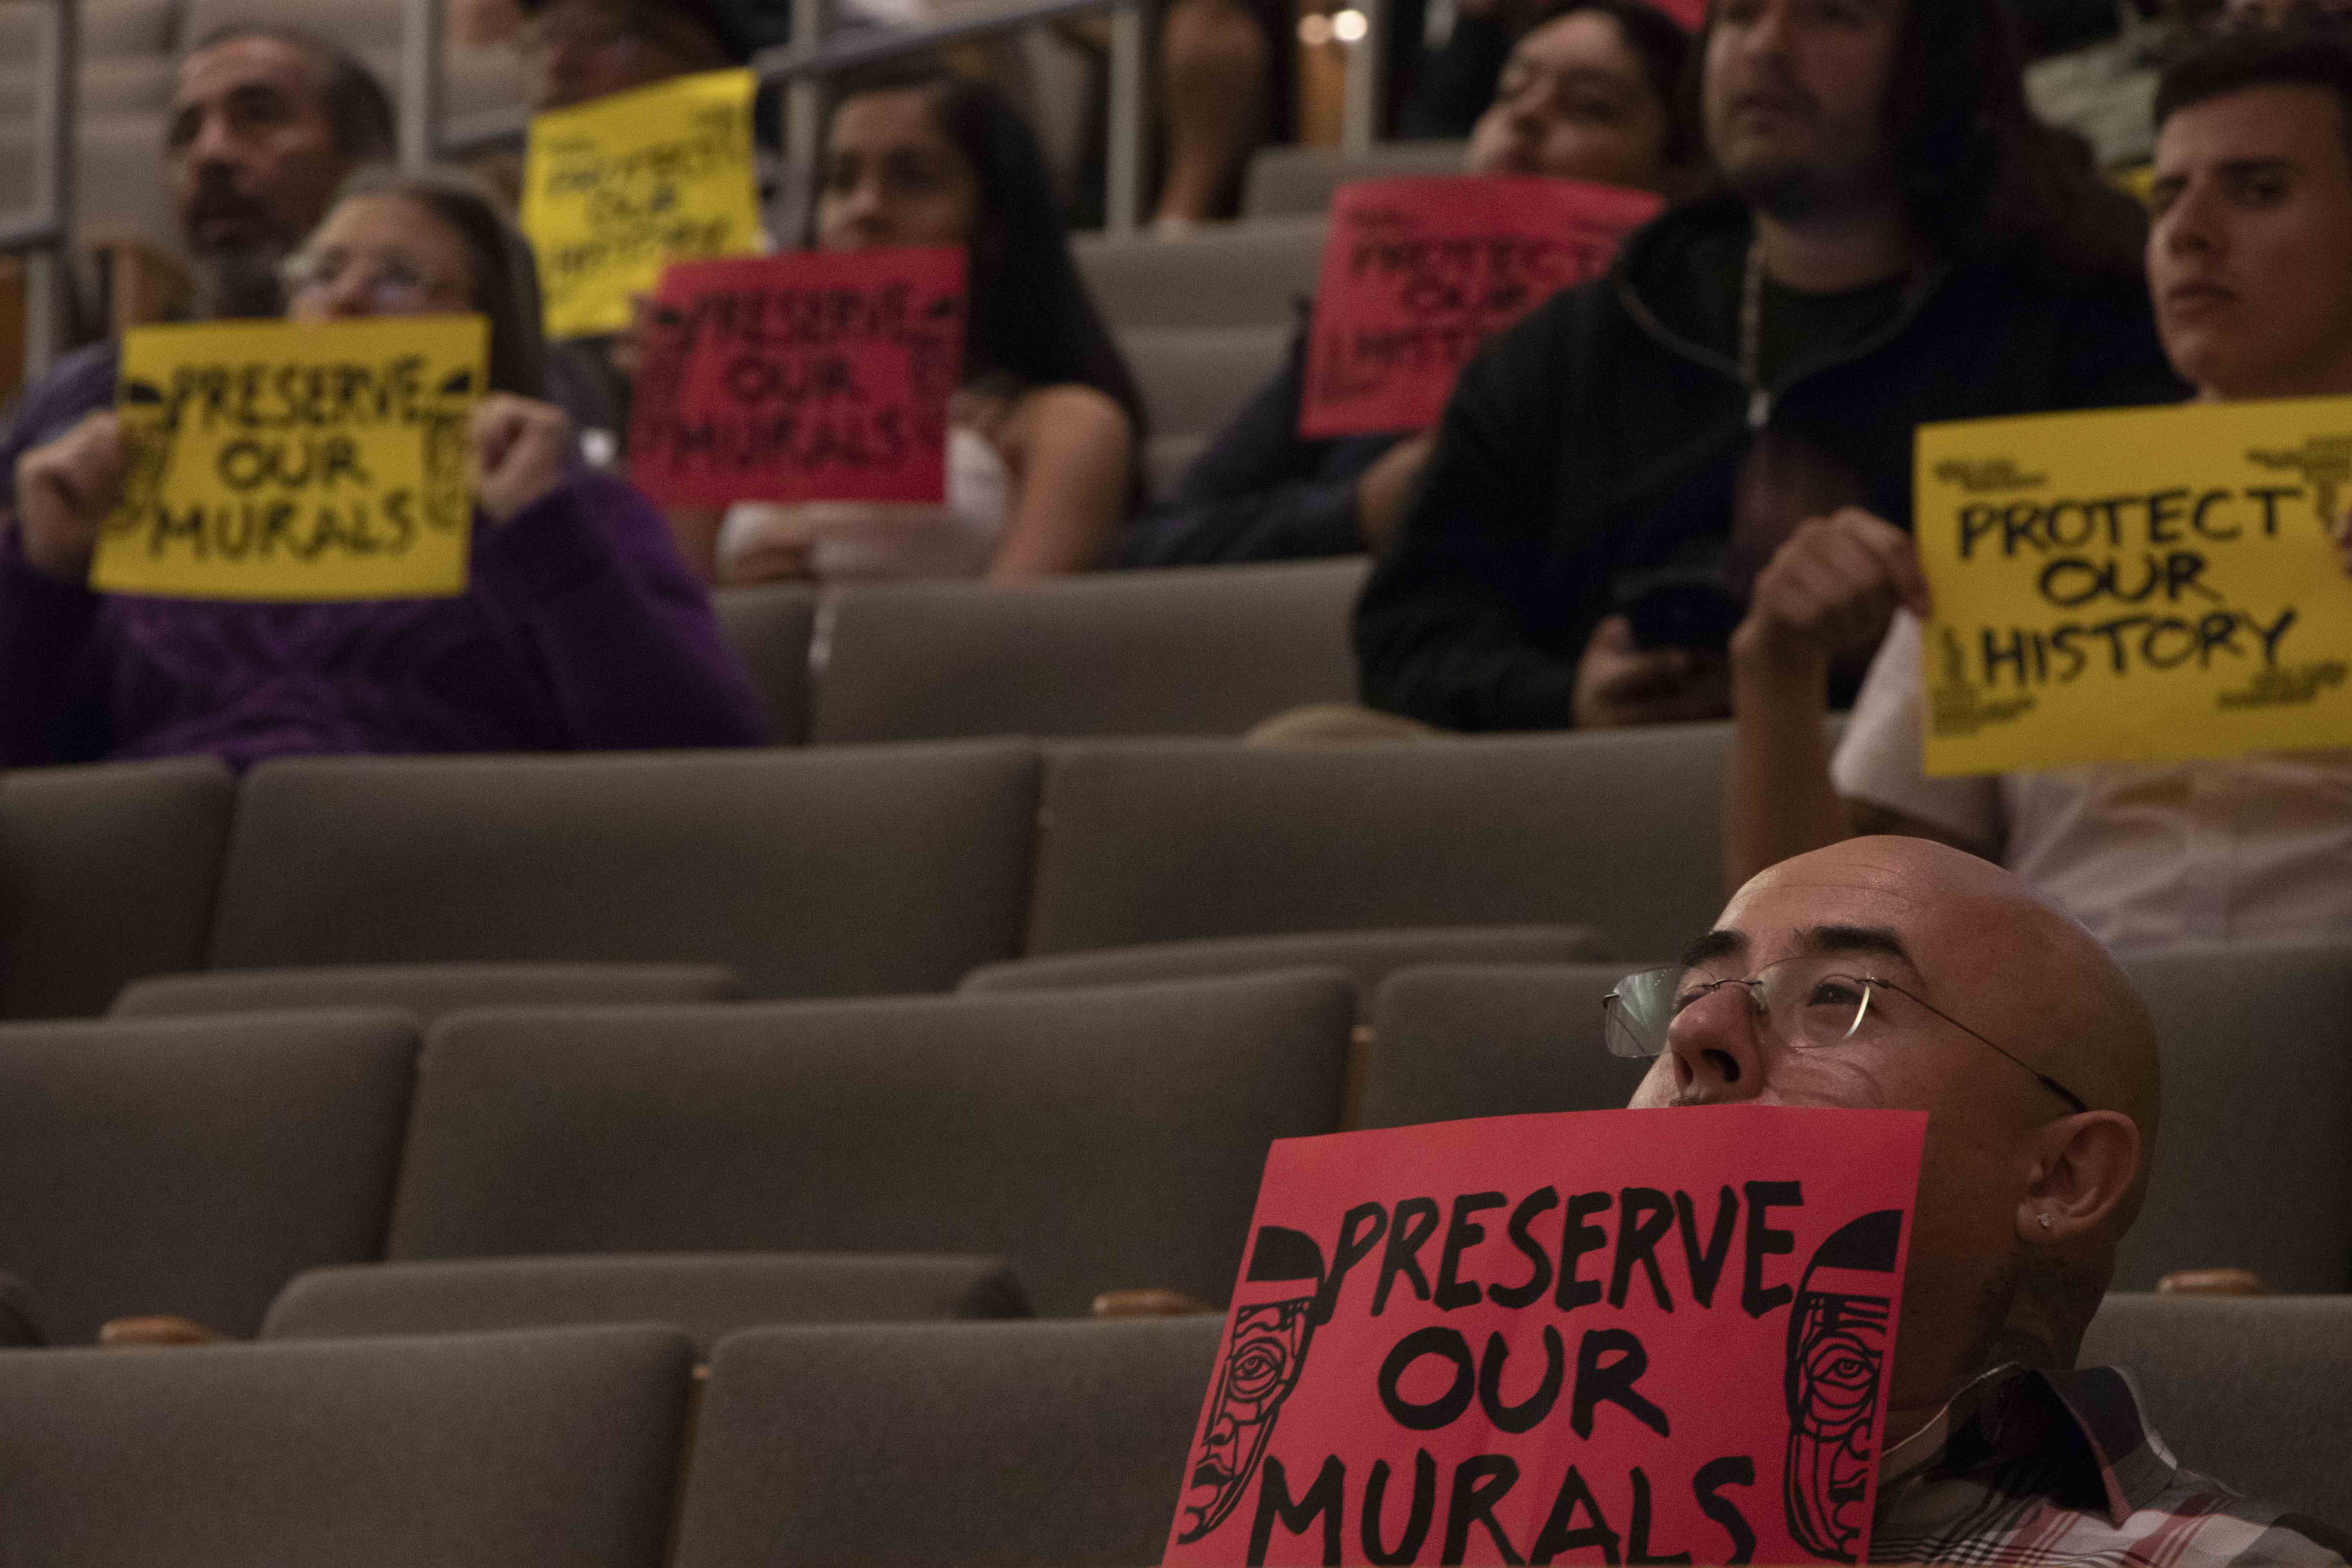 Residents hold up signs during a Historic Landmarks Commission meeting in San Jose, Calif., on Wednesday, Oct. 2, 2019. (Vanessa Ochavillo/Peninsula Press)